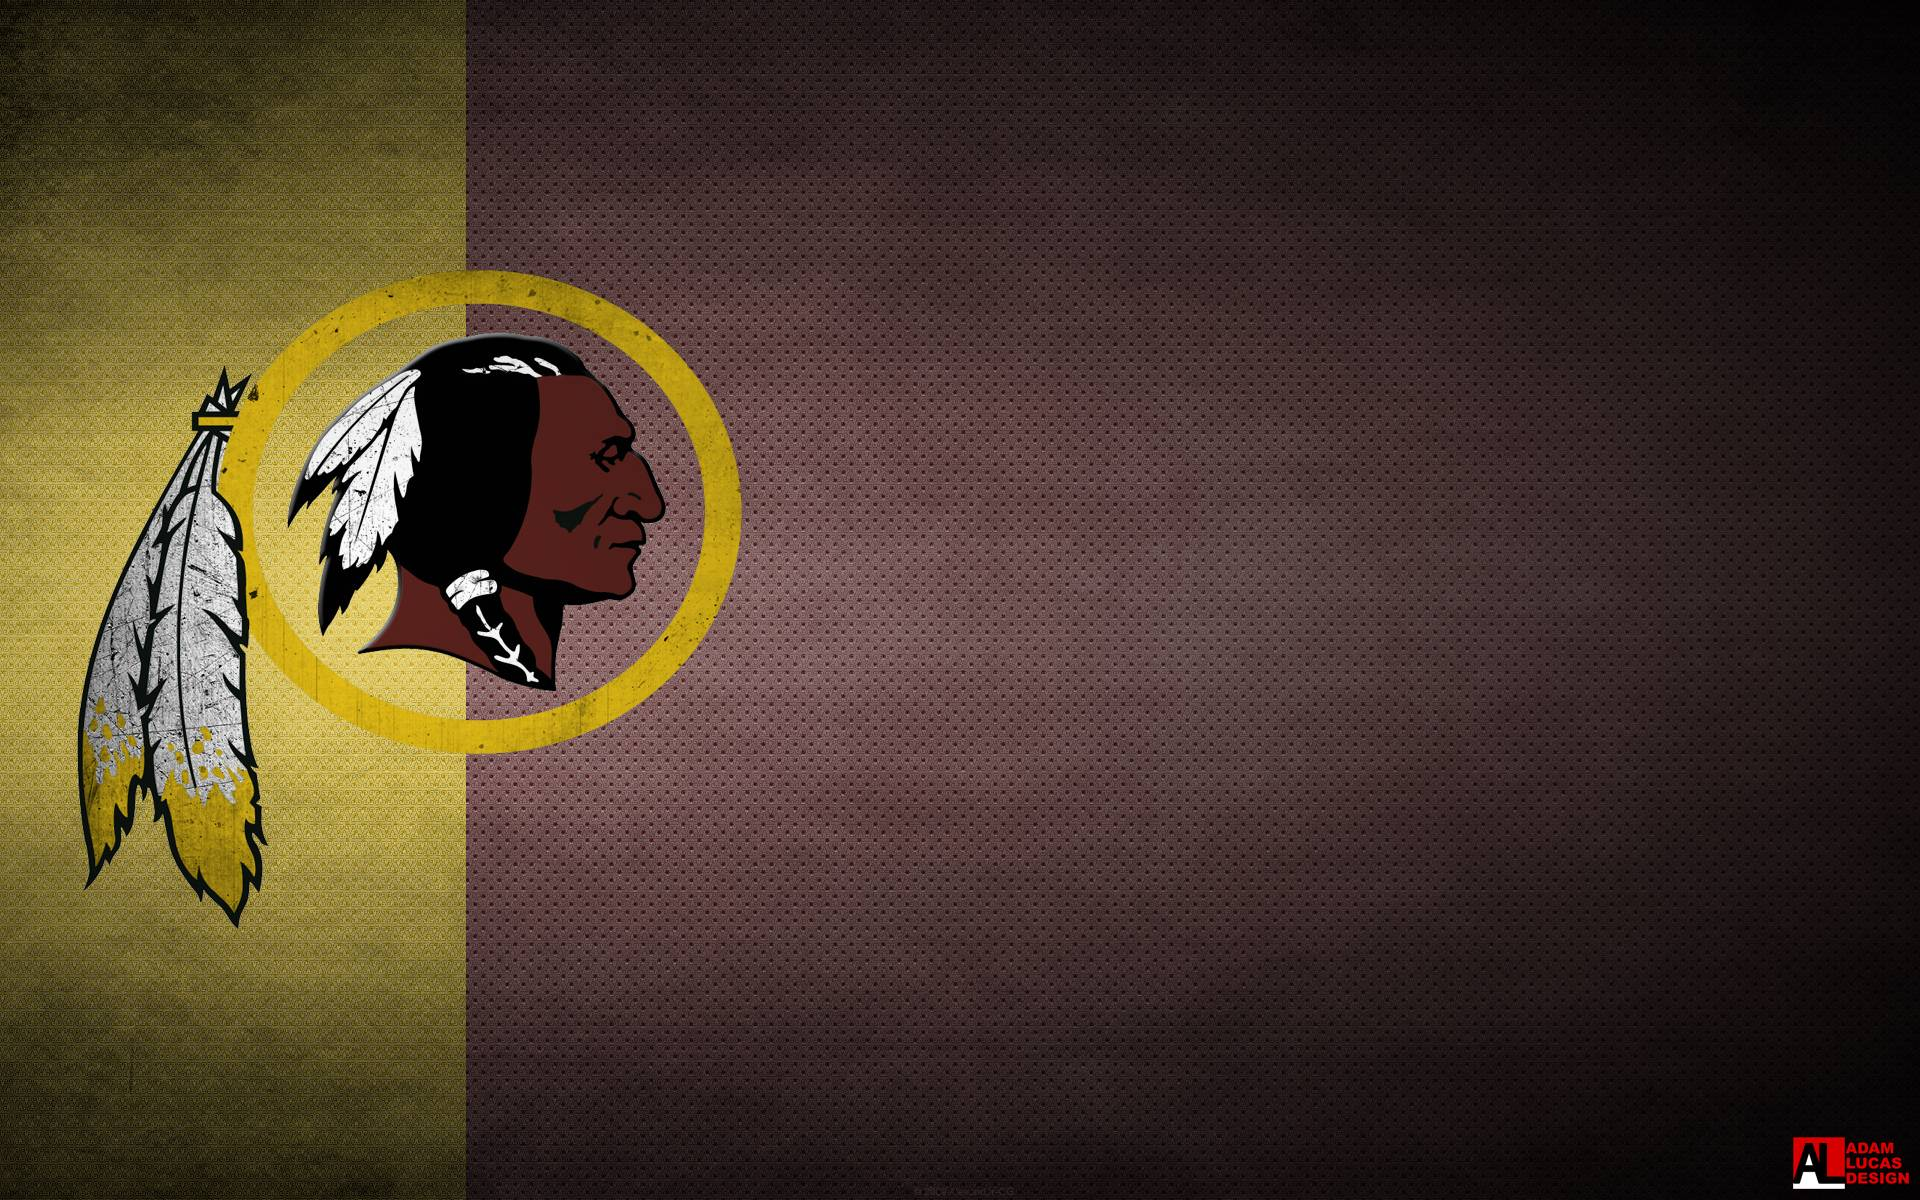 Download-free-redskins-for-your-mobile-phone-most-1920%C3%97-Redskins-Adorab-wallpaper-wpc9004410